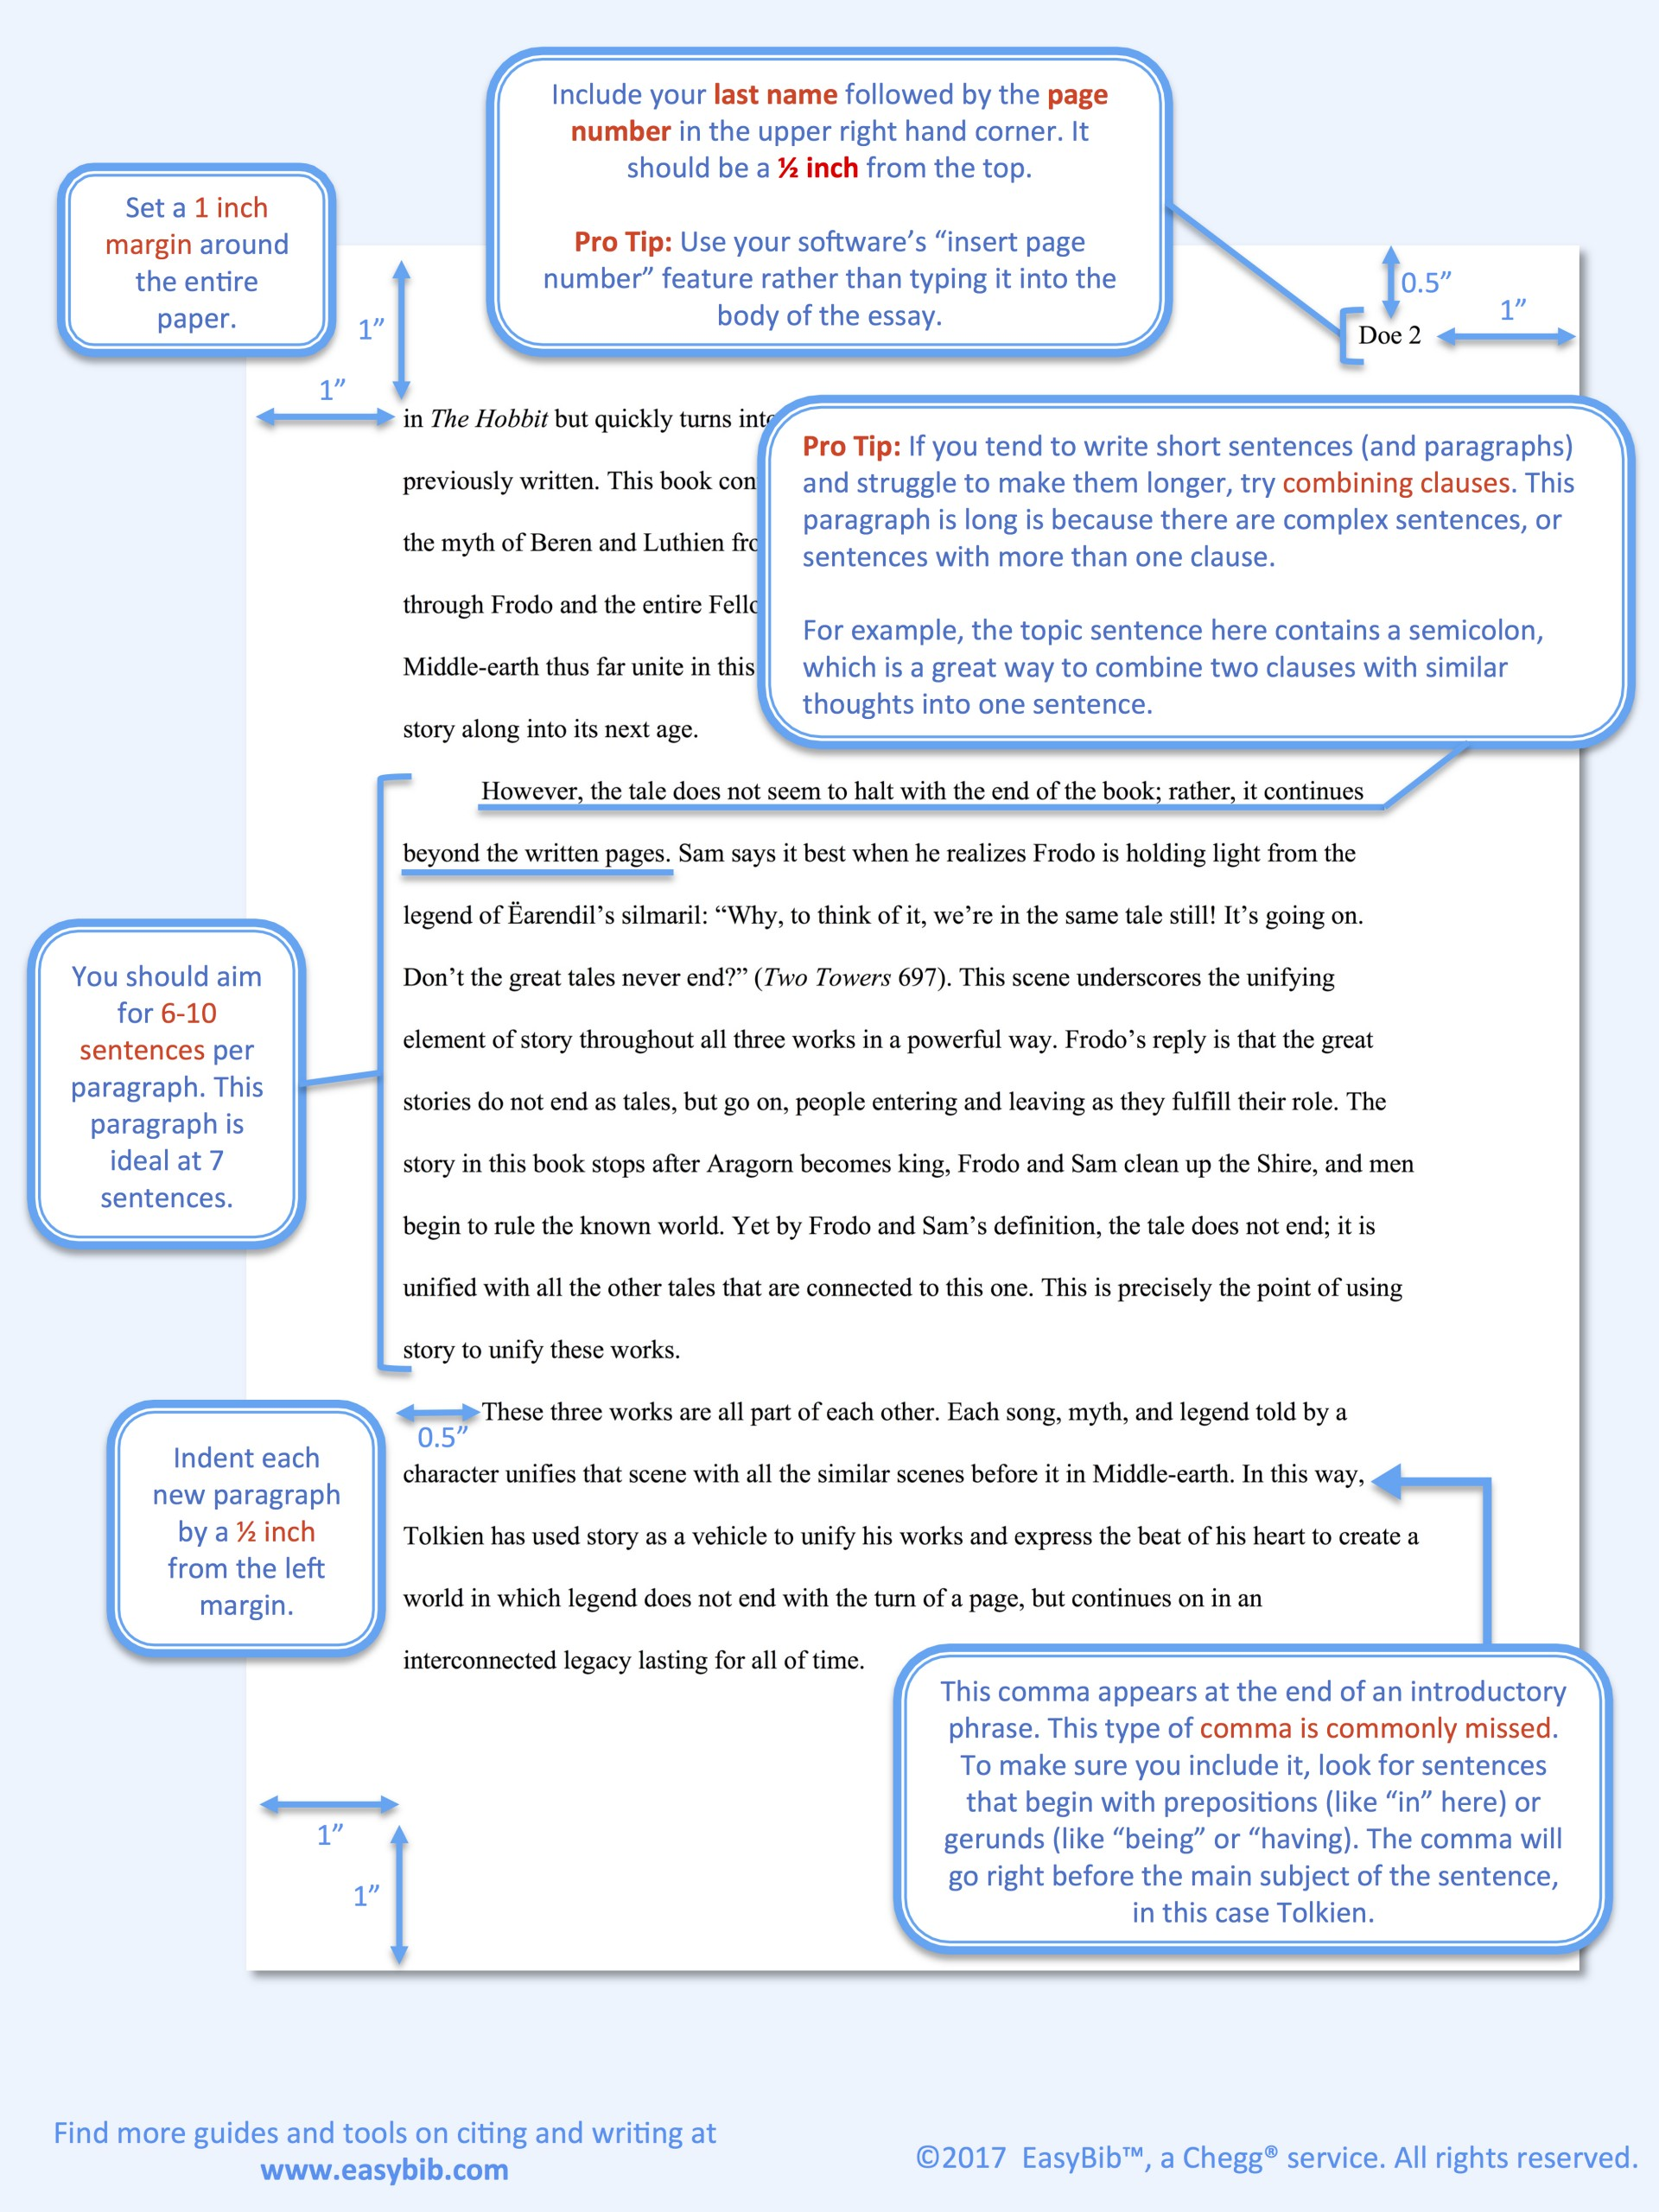 014 Research Paper Model Mla Citing Internet Excellent Sources 1920